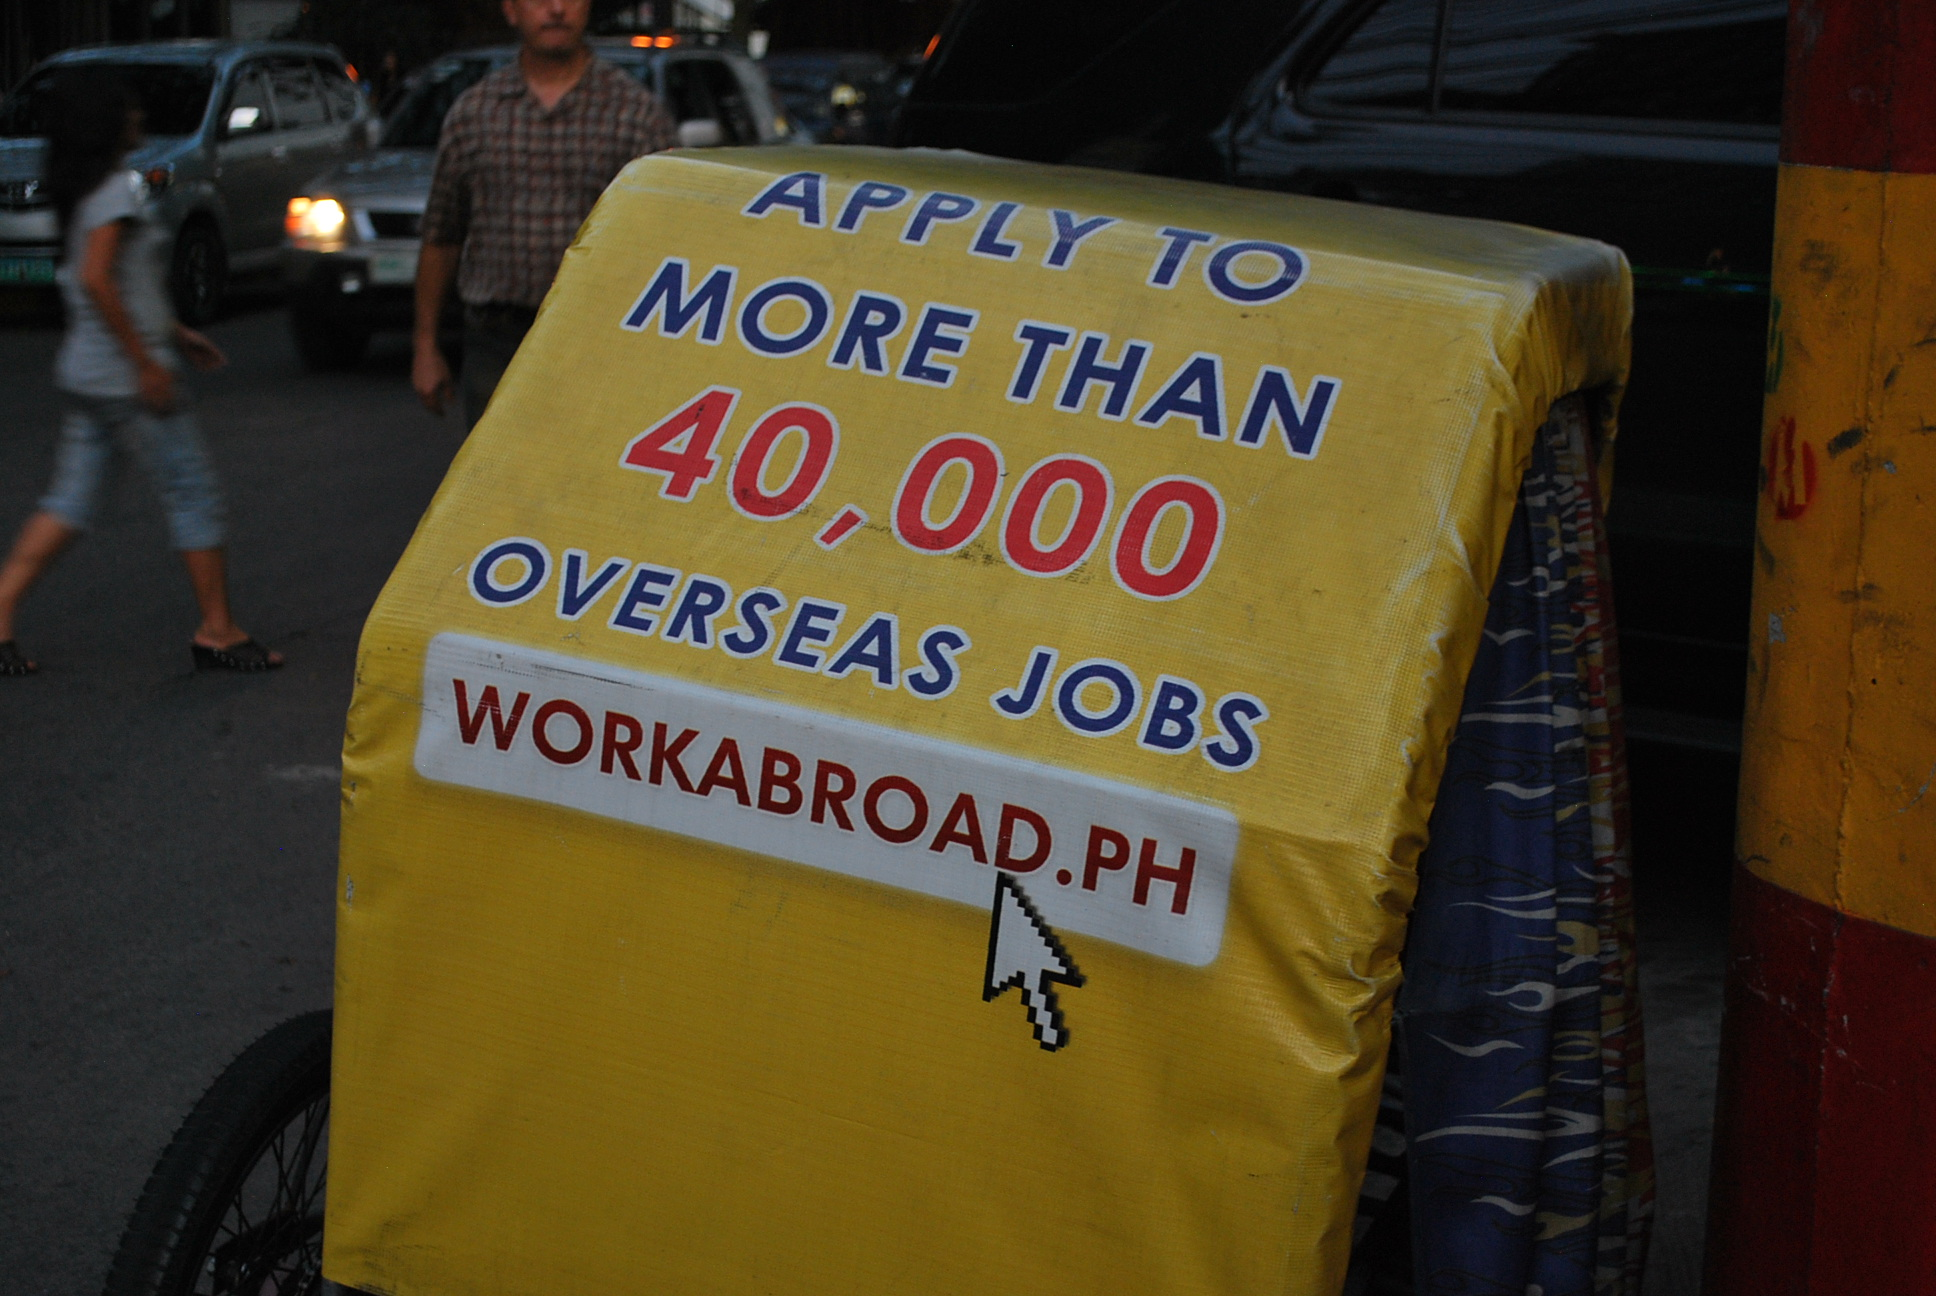 Advertisement on the back of tuk-tuk in Manila. Around 10 million Filipinos work abroad, sending billions of pesos in remittances back home to support families in a long-ailing economy (Photo: Simon Roughneen)